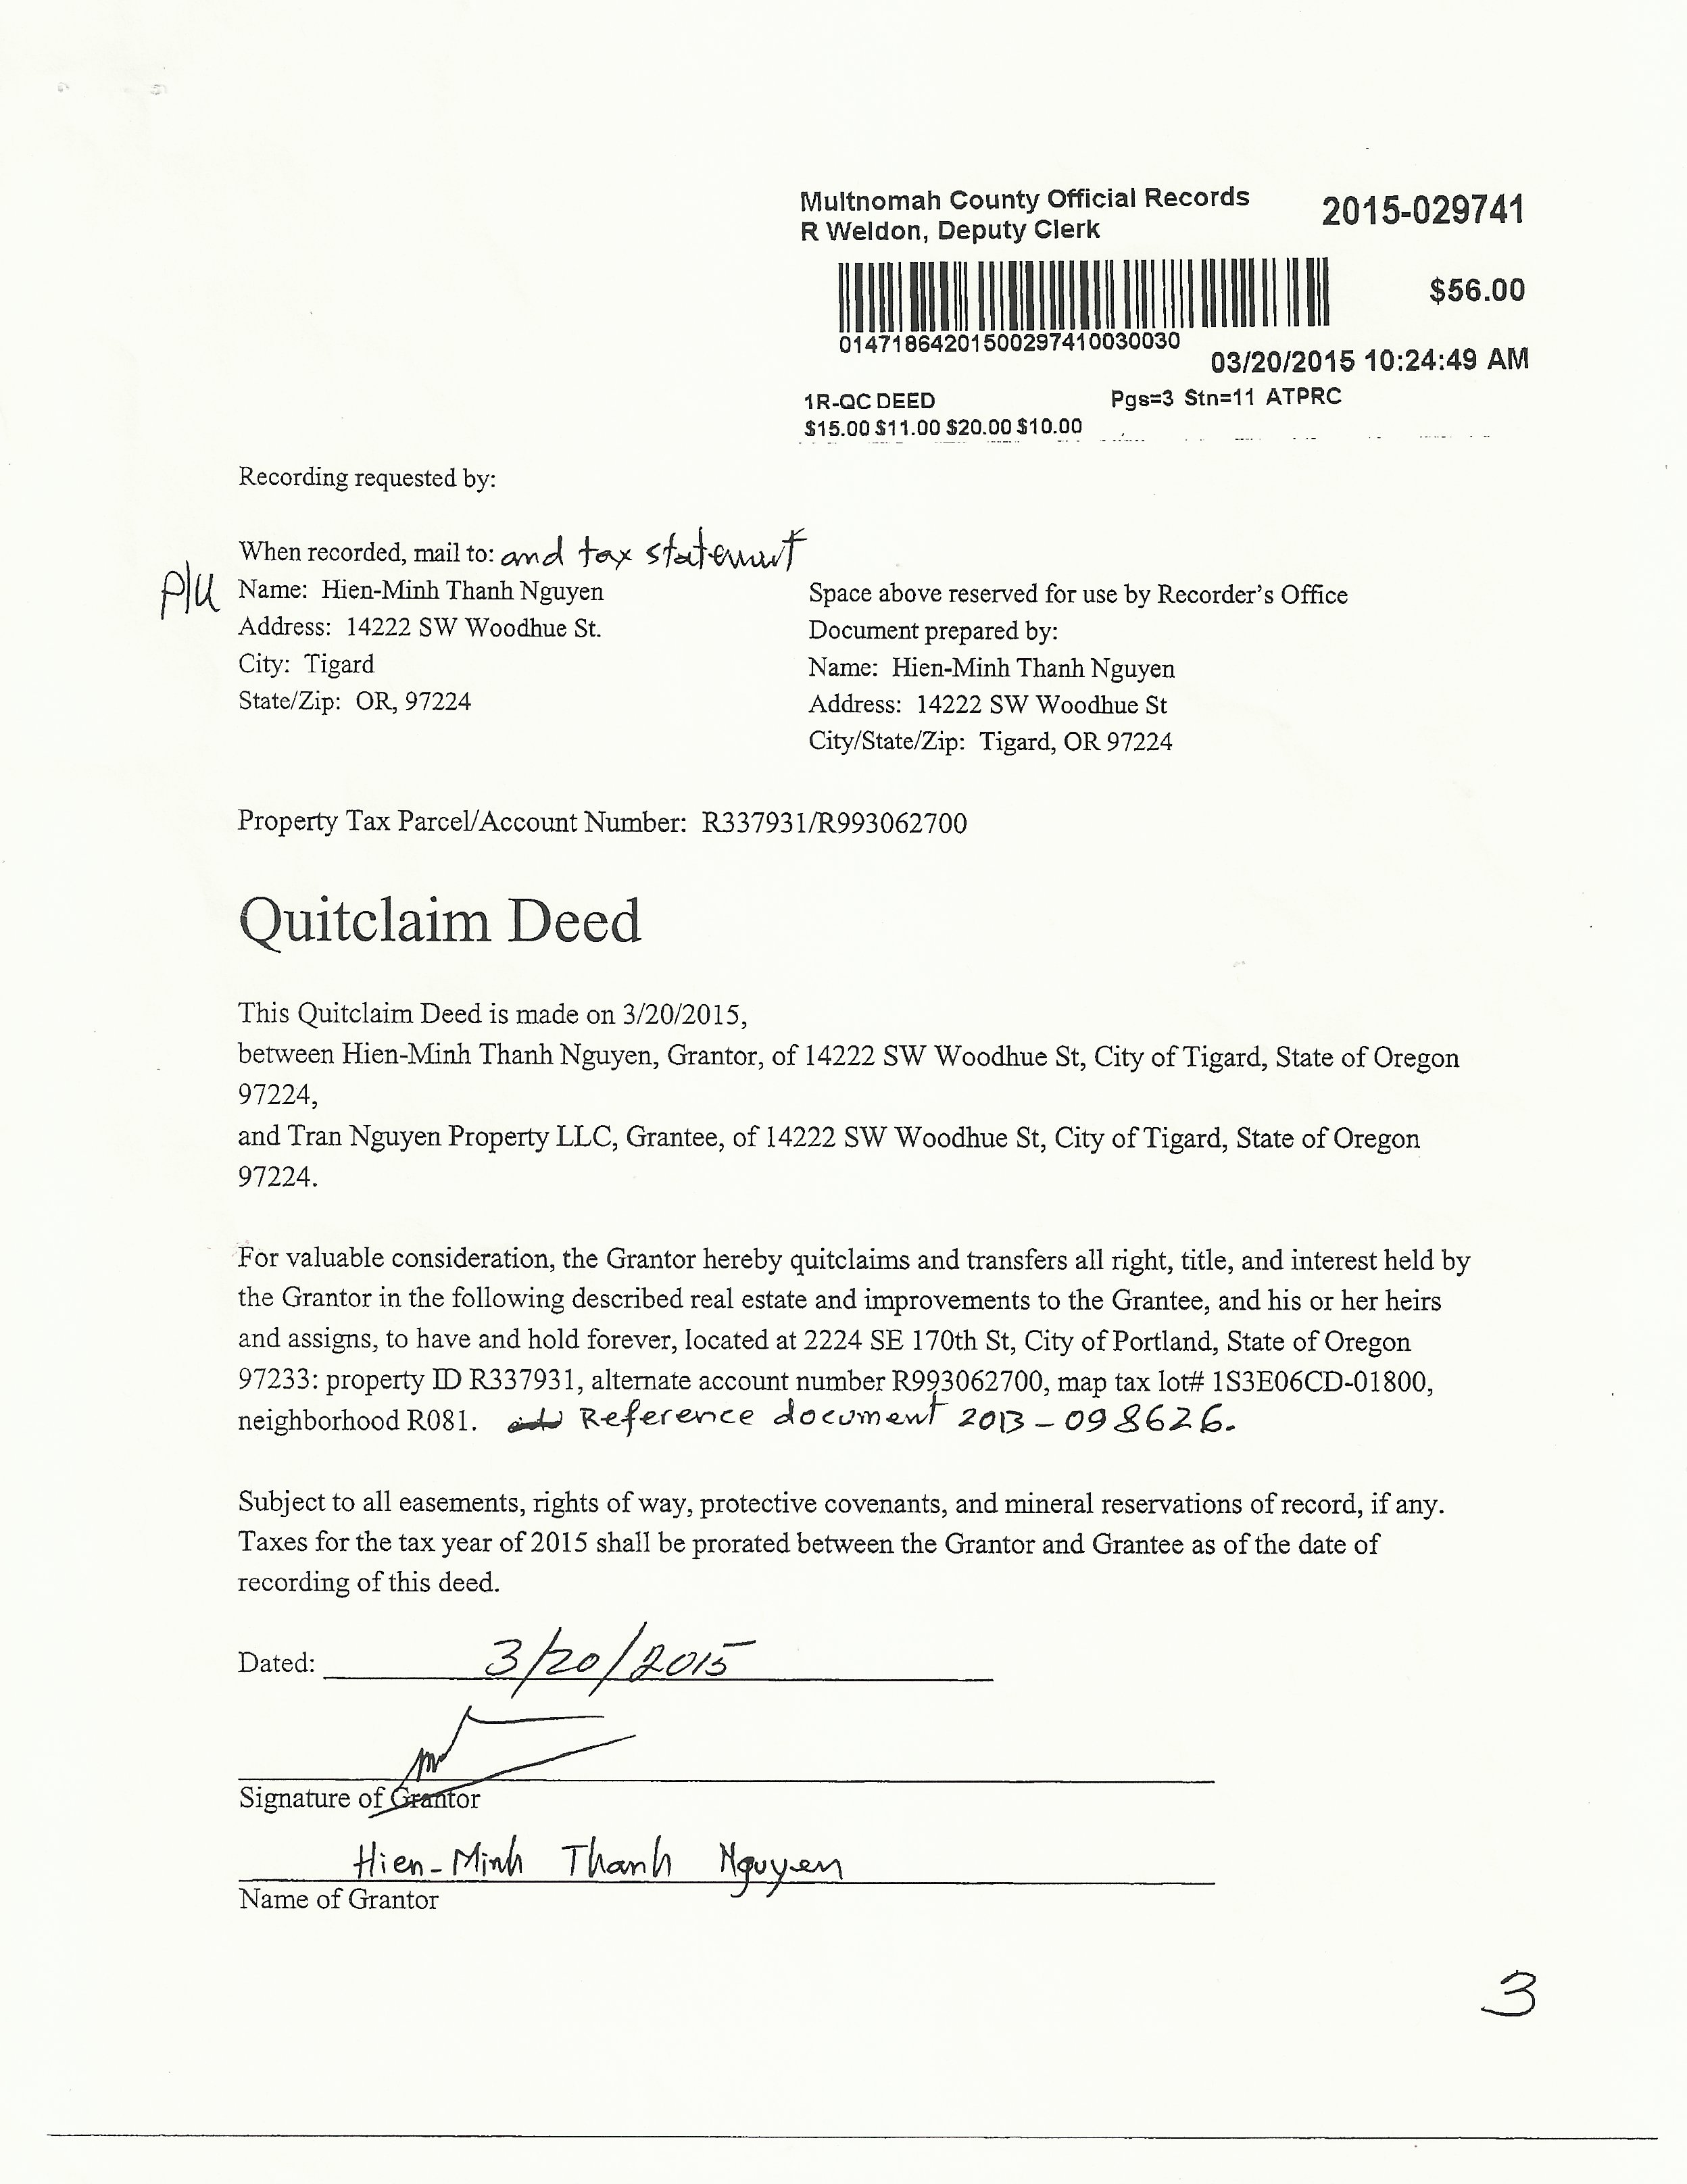 Transferring a title of property from a person to an llc for quit claim deeds all you have to do is pay a few dollars to get it printed here are some examples that i copied for my own quit claim deed solutioingenieria Choice Image